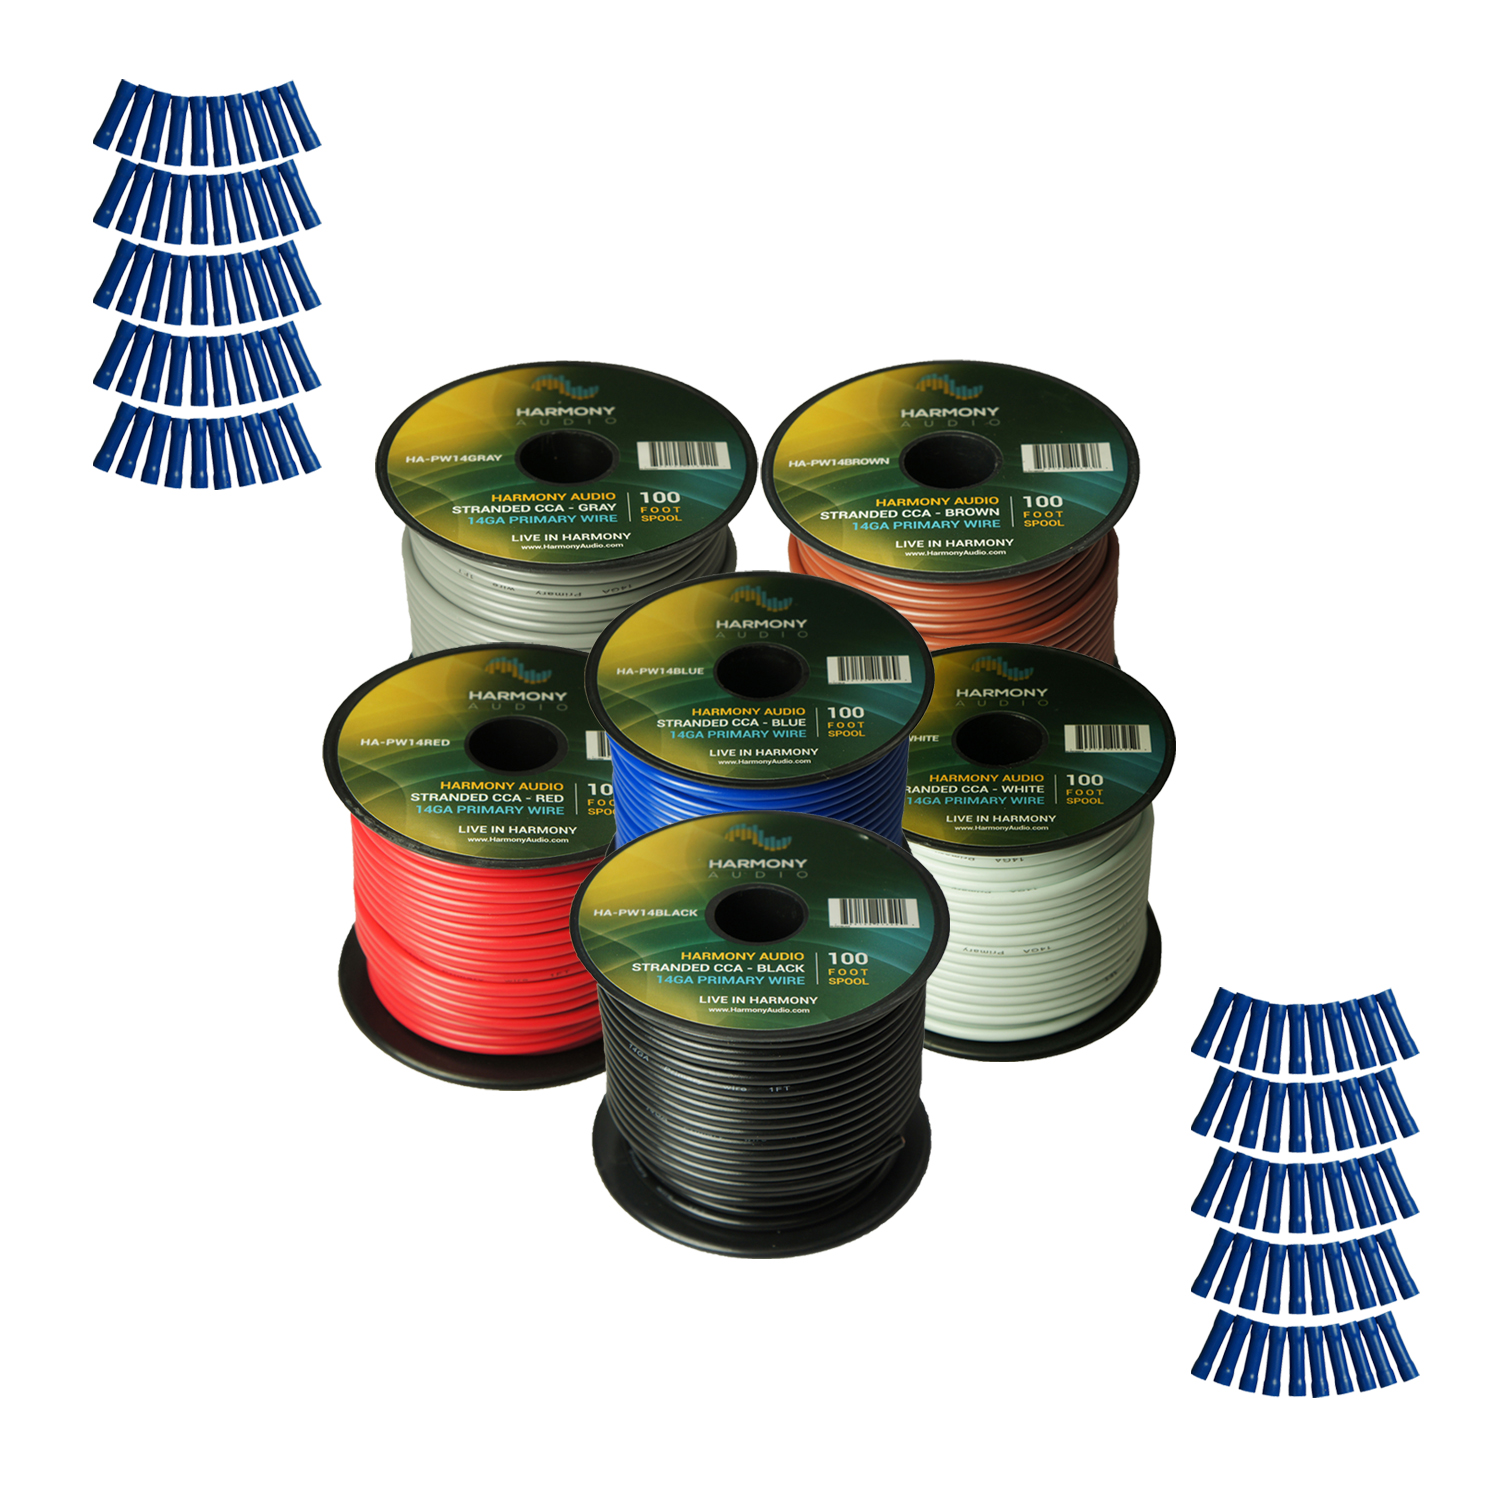 Harmony Audio Primary Single Conductor 14 Gauge Power or Ground Wire - 6 Rolls - 600 Feet - 6 Color Mix for Car Audio / Trailer / Model Train / Remote